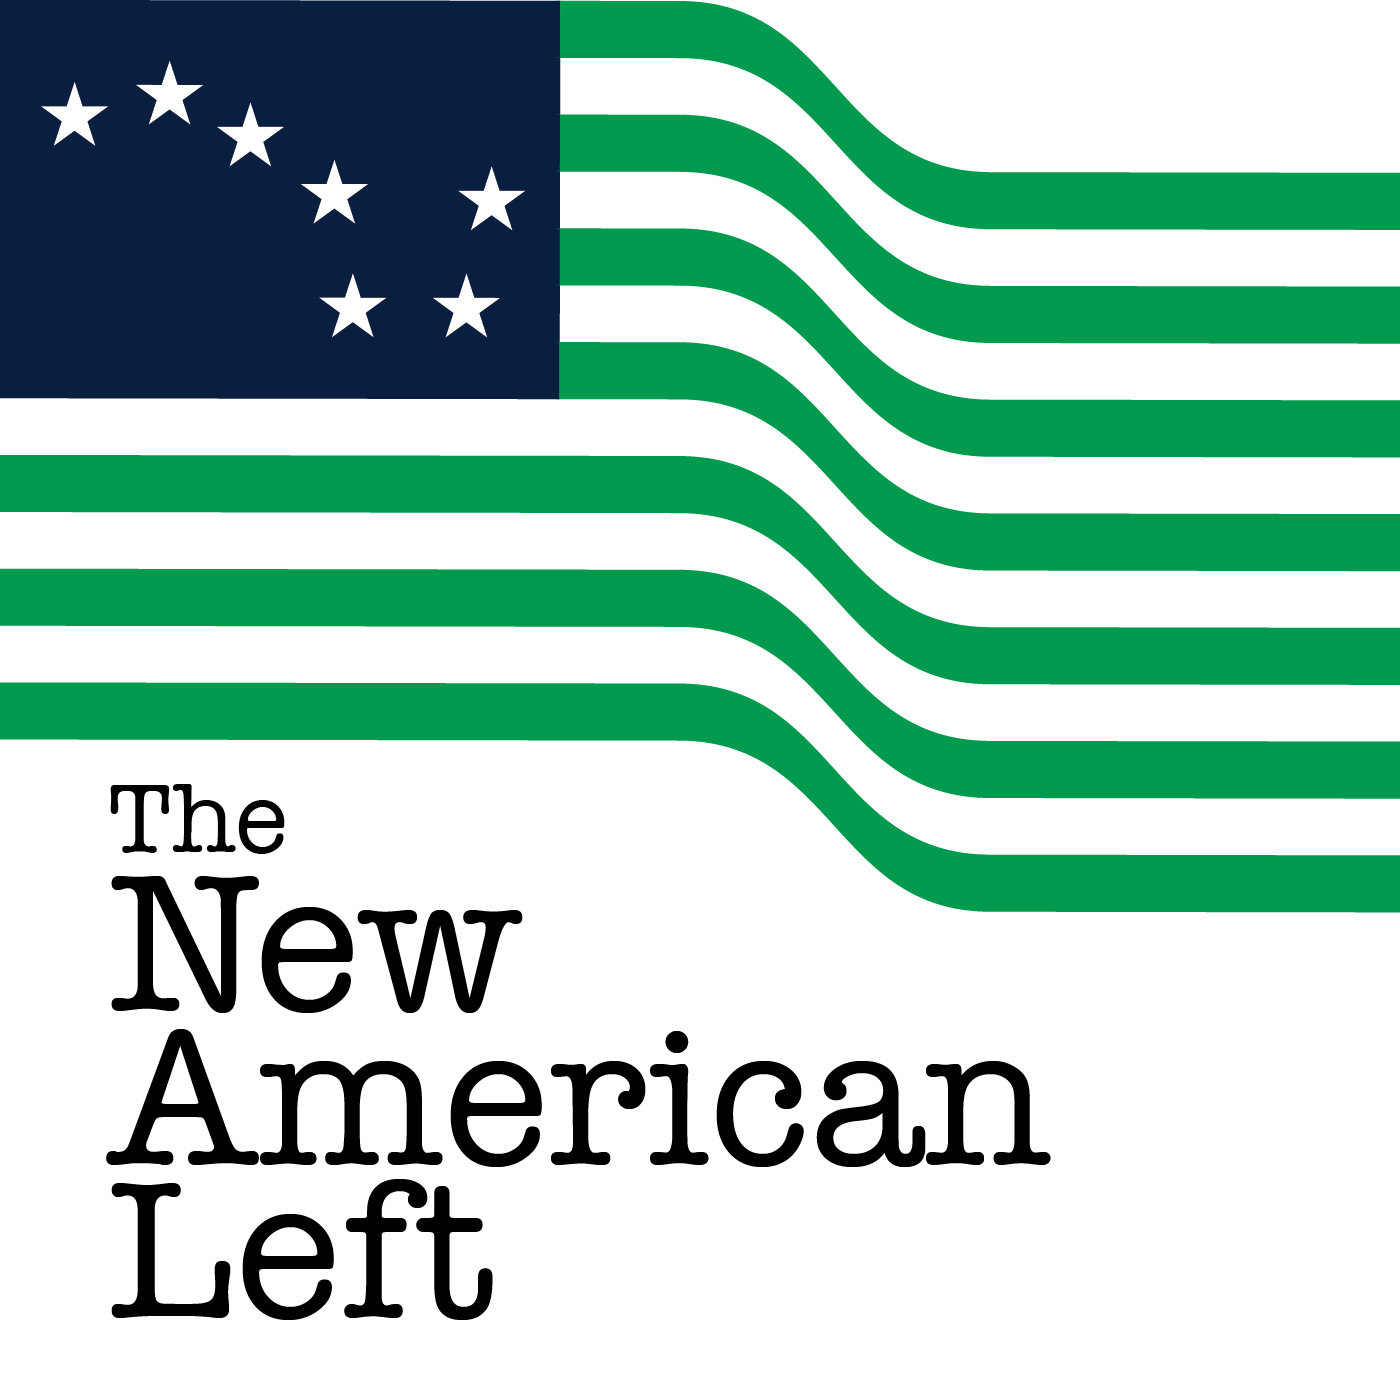 The New American Left